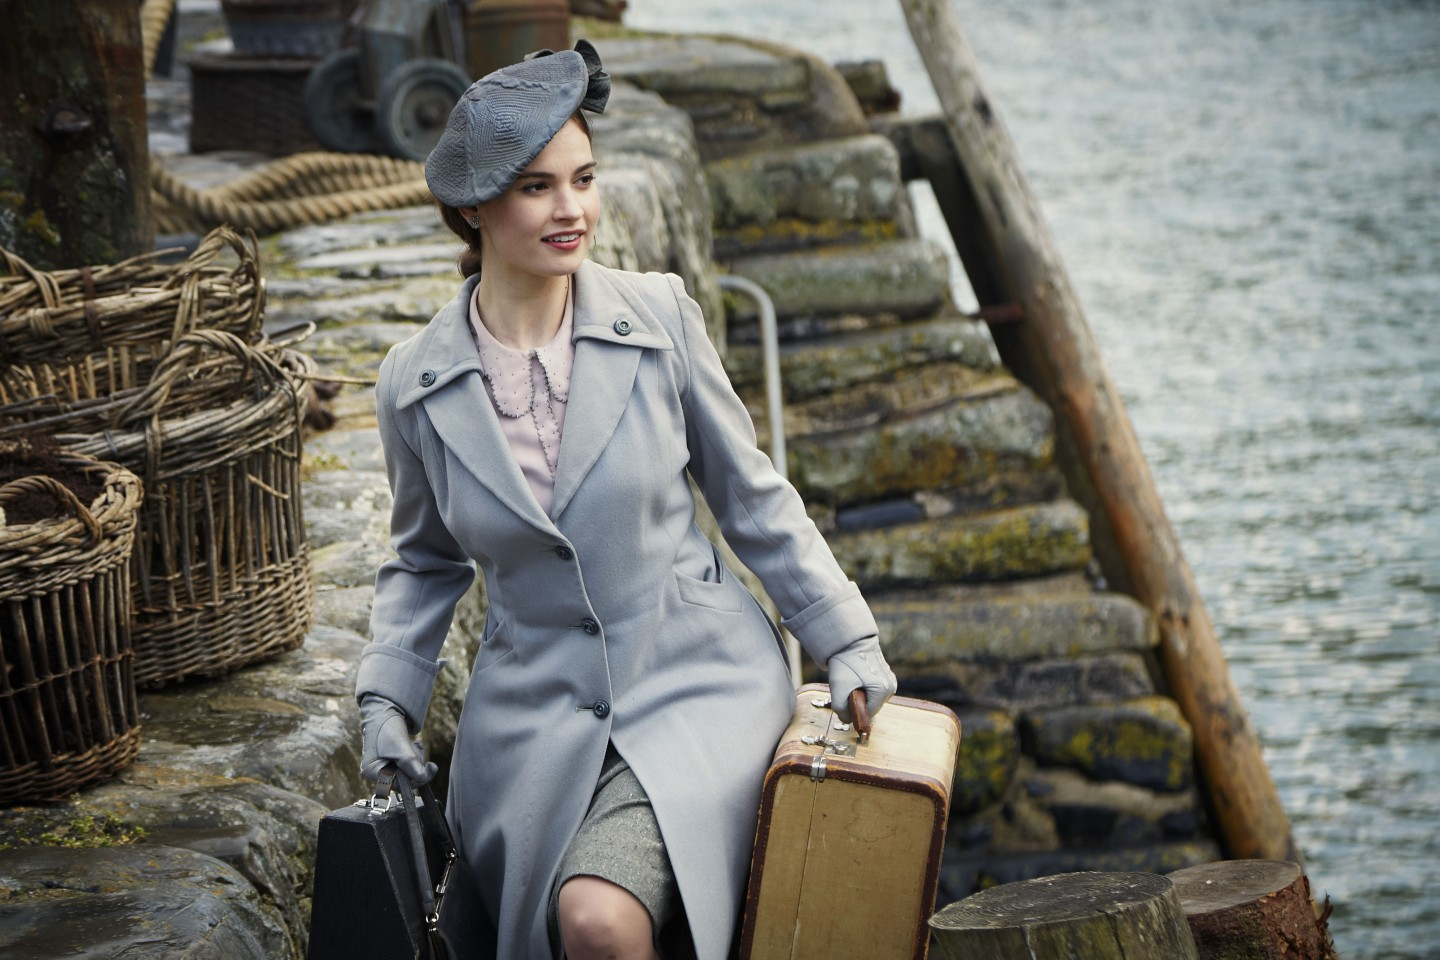 The Guernsey Literary and Potato Peel Pie Society film still - Lily James playing Juliet Ashton (02) © STUDIOCANAL S.A.S